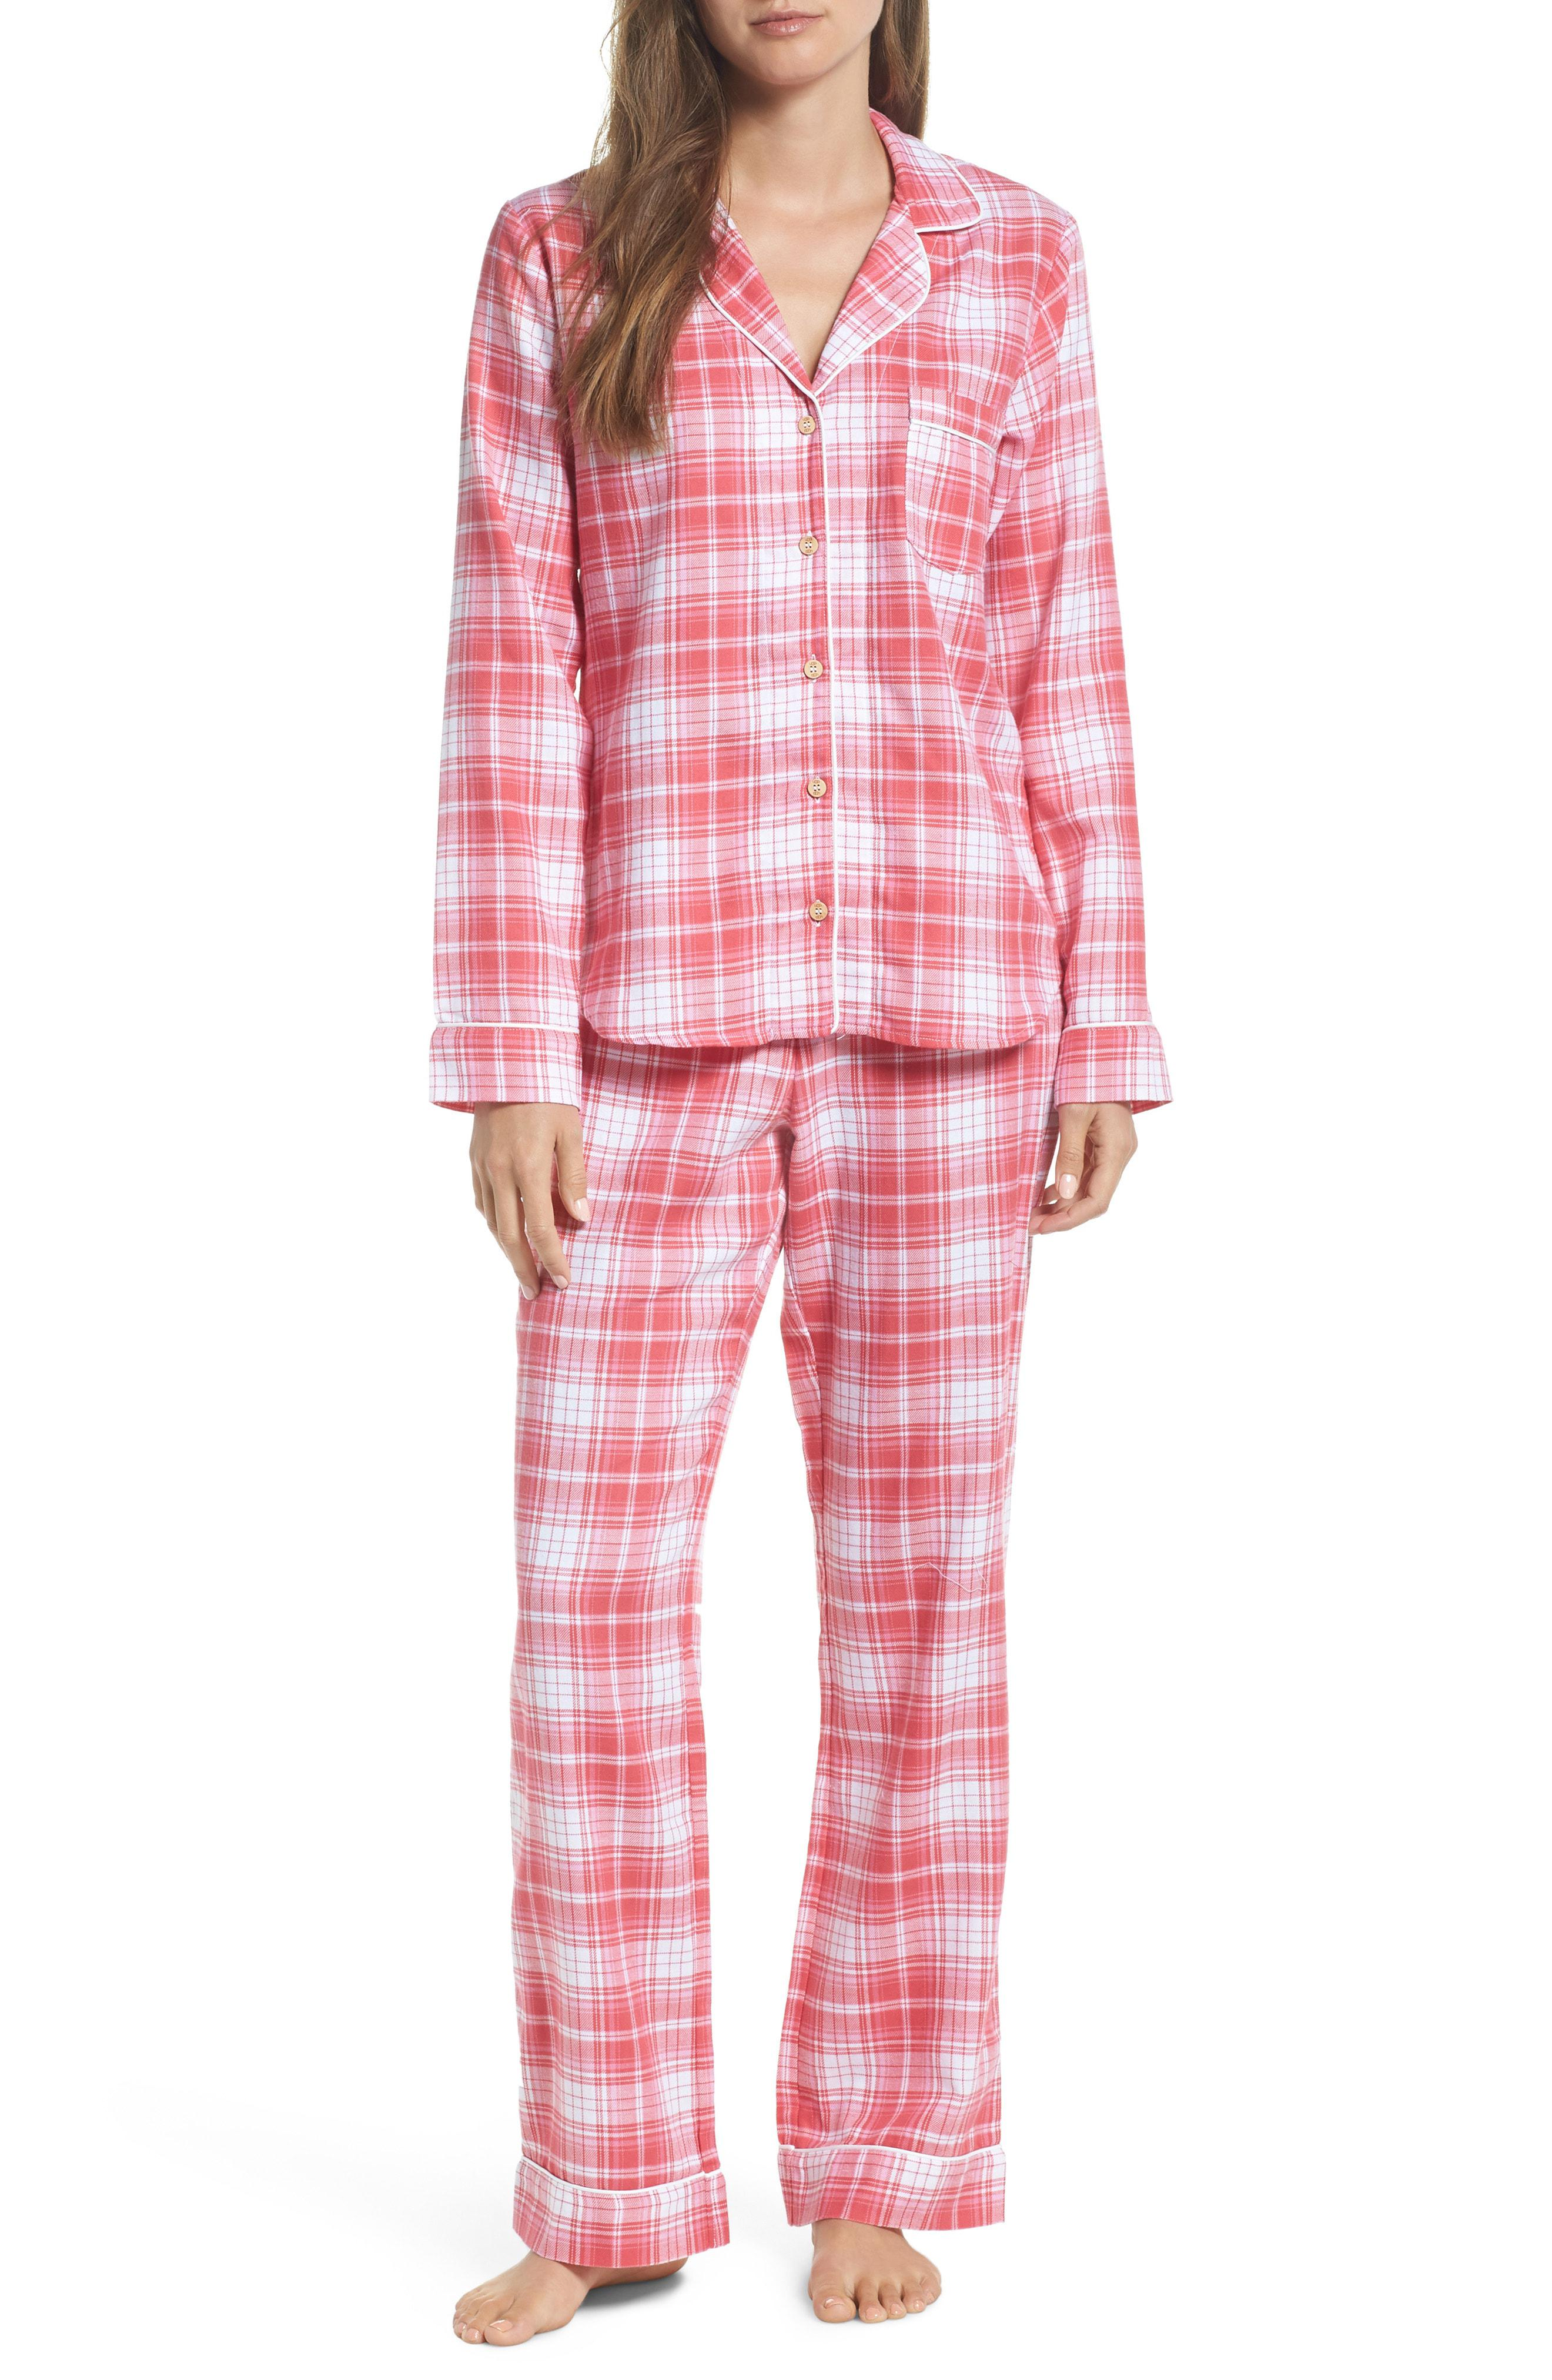 a0aa290277 Lyst - Ugg Ugg Raven Plaid Pajamas in Red